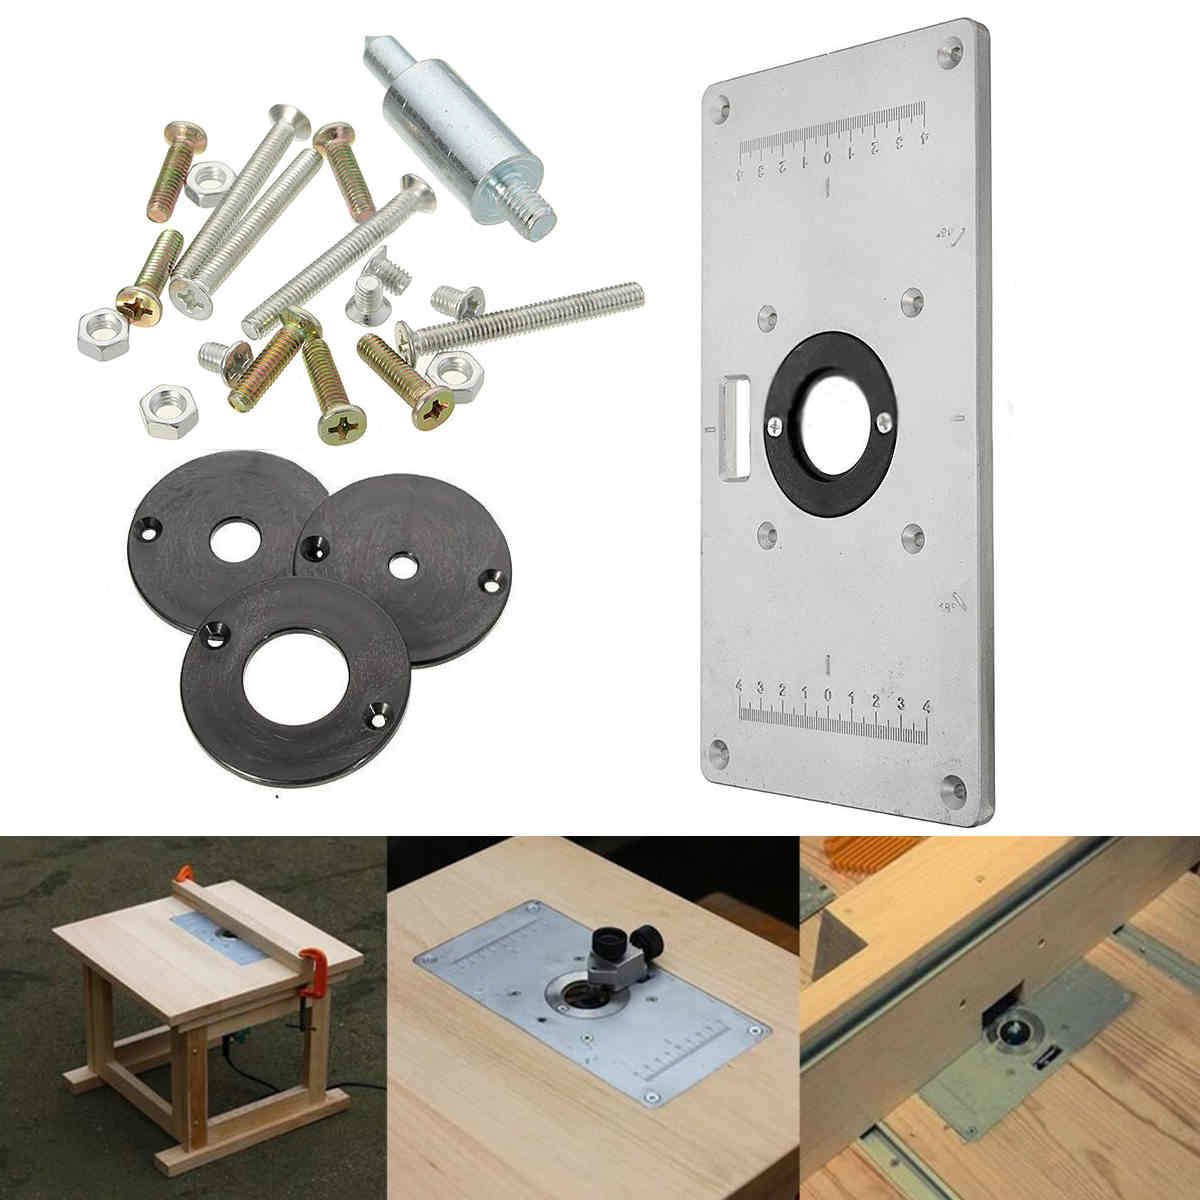 2017 1pc mayitr aluminum metal router table insert plate with 4pcs 2017 1pc mayitr aluminum metal router table insert plate with 4pcs router insert rings for woodworking greentooth Choice Image